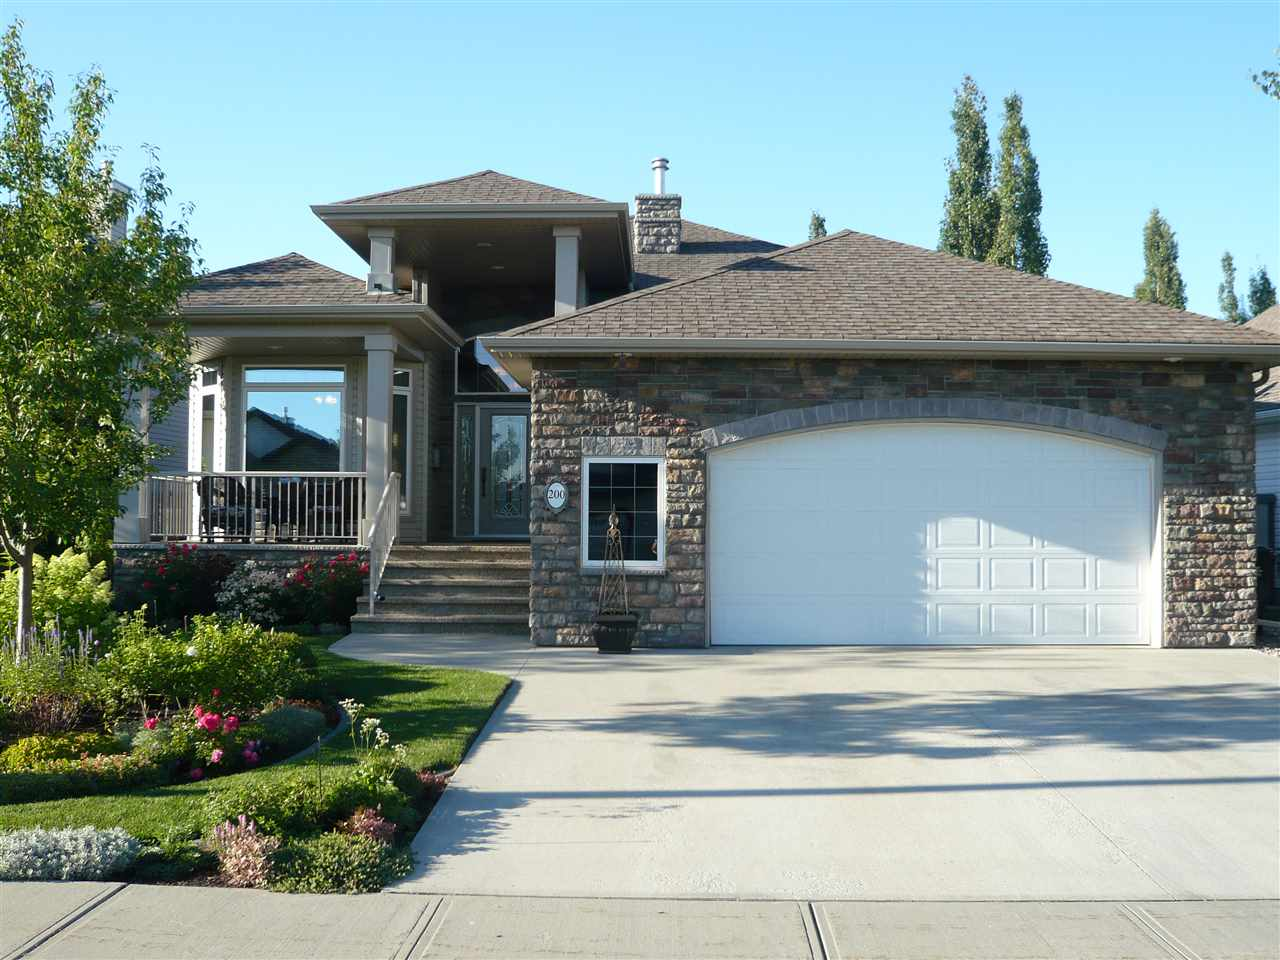 "If you can do it, you want to buy a home from these sellers!! Absolutely impeccable 1677 sq ft SANTOS Custom Built bungalow with over $200K in extras from the builder & likely over 100K in landscaping/yard. This home is a 1 bedroom plus den with an additional bedroom down. Lower level includes a rec room, wet bar & huge storage area currently used as a gaming room. The home has the best of everything, a stunning design & interior décor, it is spotless & has been maintained beautifully. Needs nothing! Exposed aggregate front porch, gorgeous stonework, 11'6"" ceiling in Living Rm, 9 ft ceiling in balance of home, amazing laundry room and walk thru pantry, gorgeous finishing/crown moulding, triple glazed windows on north and east side of home, impressive fireplace, steam shower in ensuite, composite decking, LED lighting and sprinkler system, much more! The HVAC system has furnace, radiant in-floor heating, an indirect hot water tank &  A/C. All this on a wonderful street on a large lot in Hawkstone Landing!!"